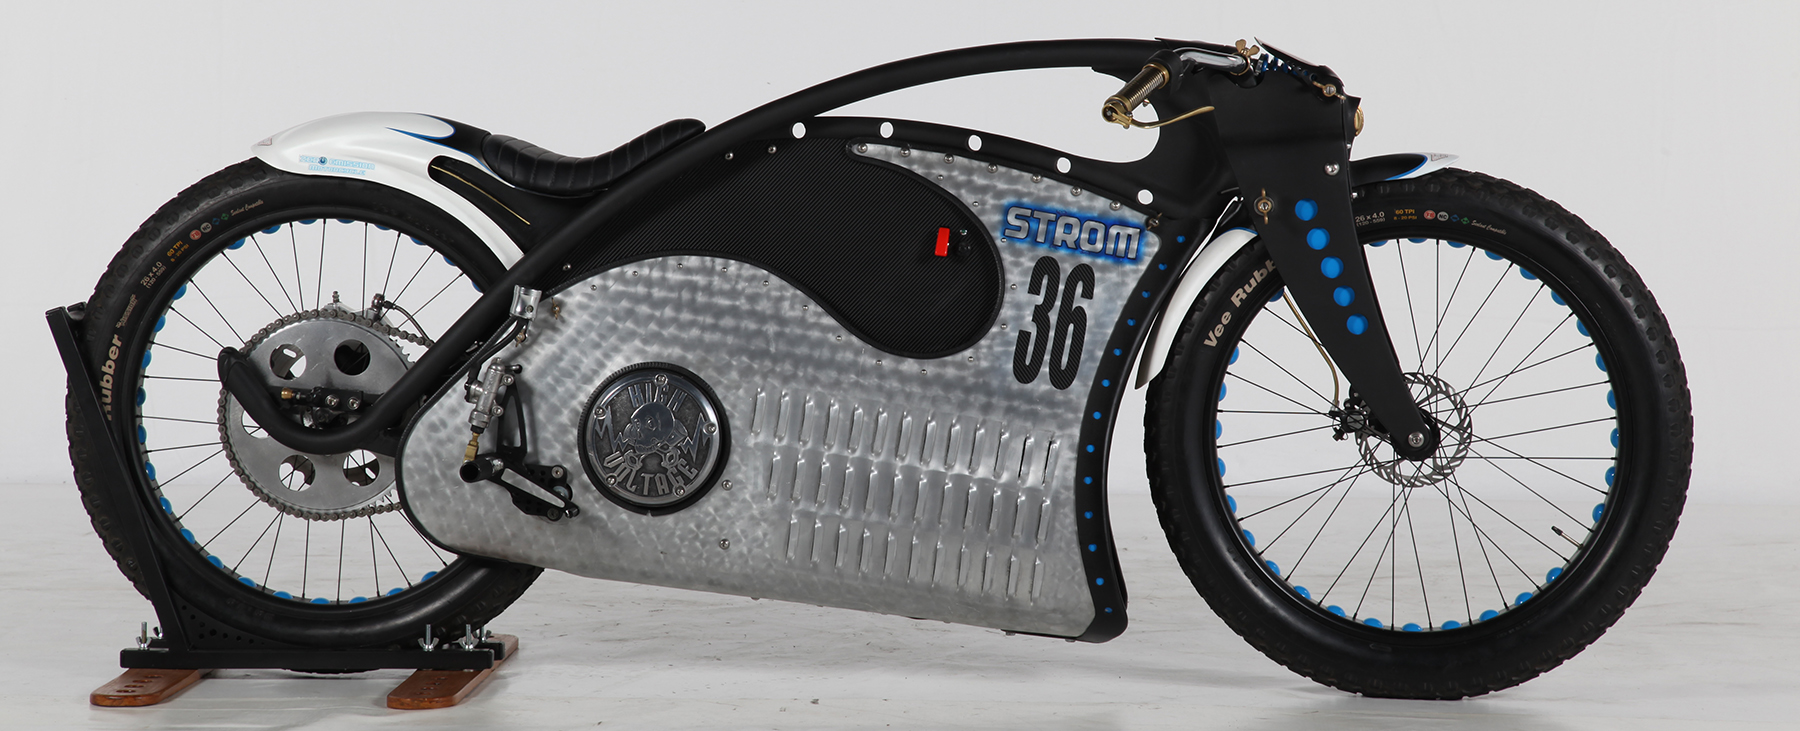 Strom36 electric motorcycle